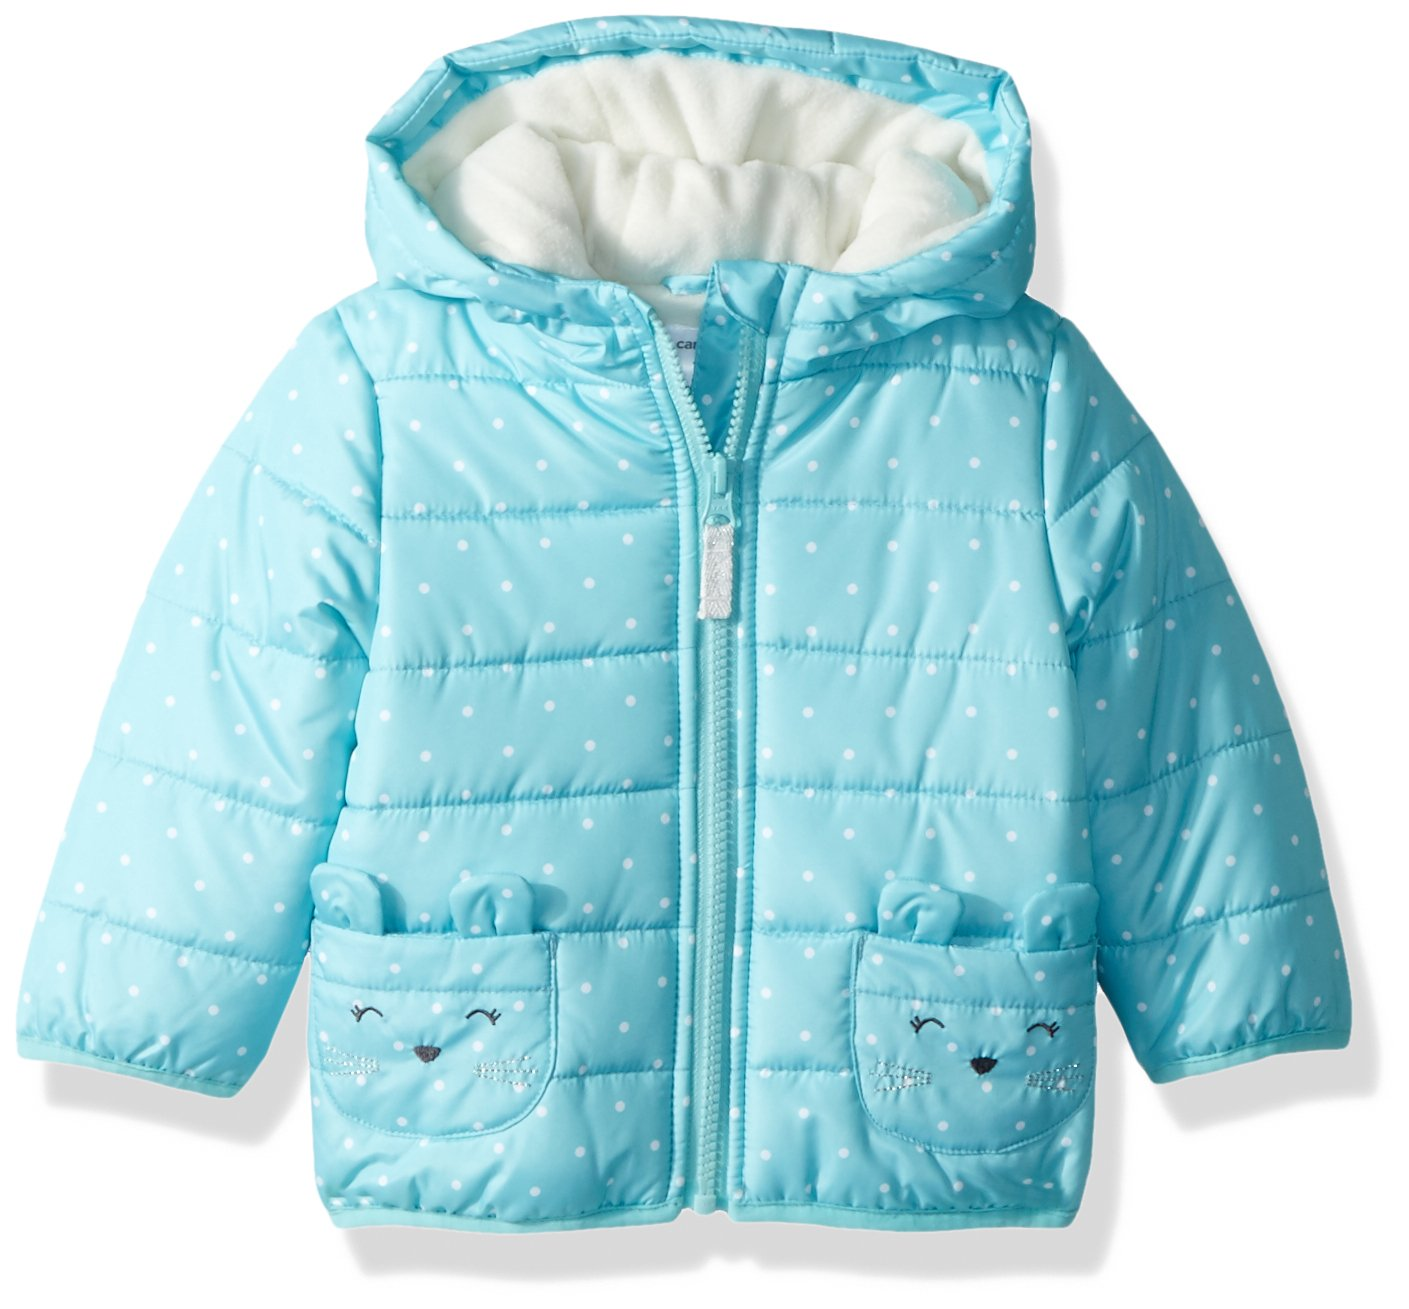 Carter's Little Girls' Fleece Lined Critter Puffer Jacket Coat, Turquoise Mouse, 5/6 by Carter's